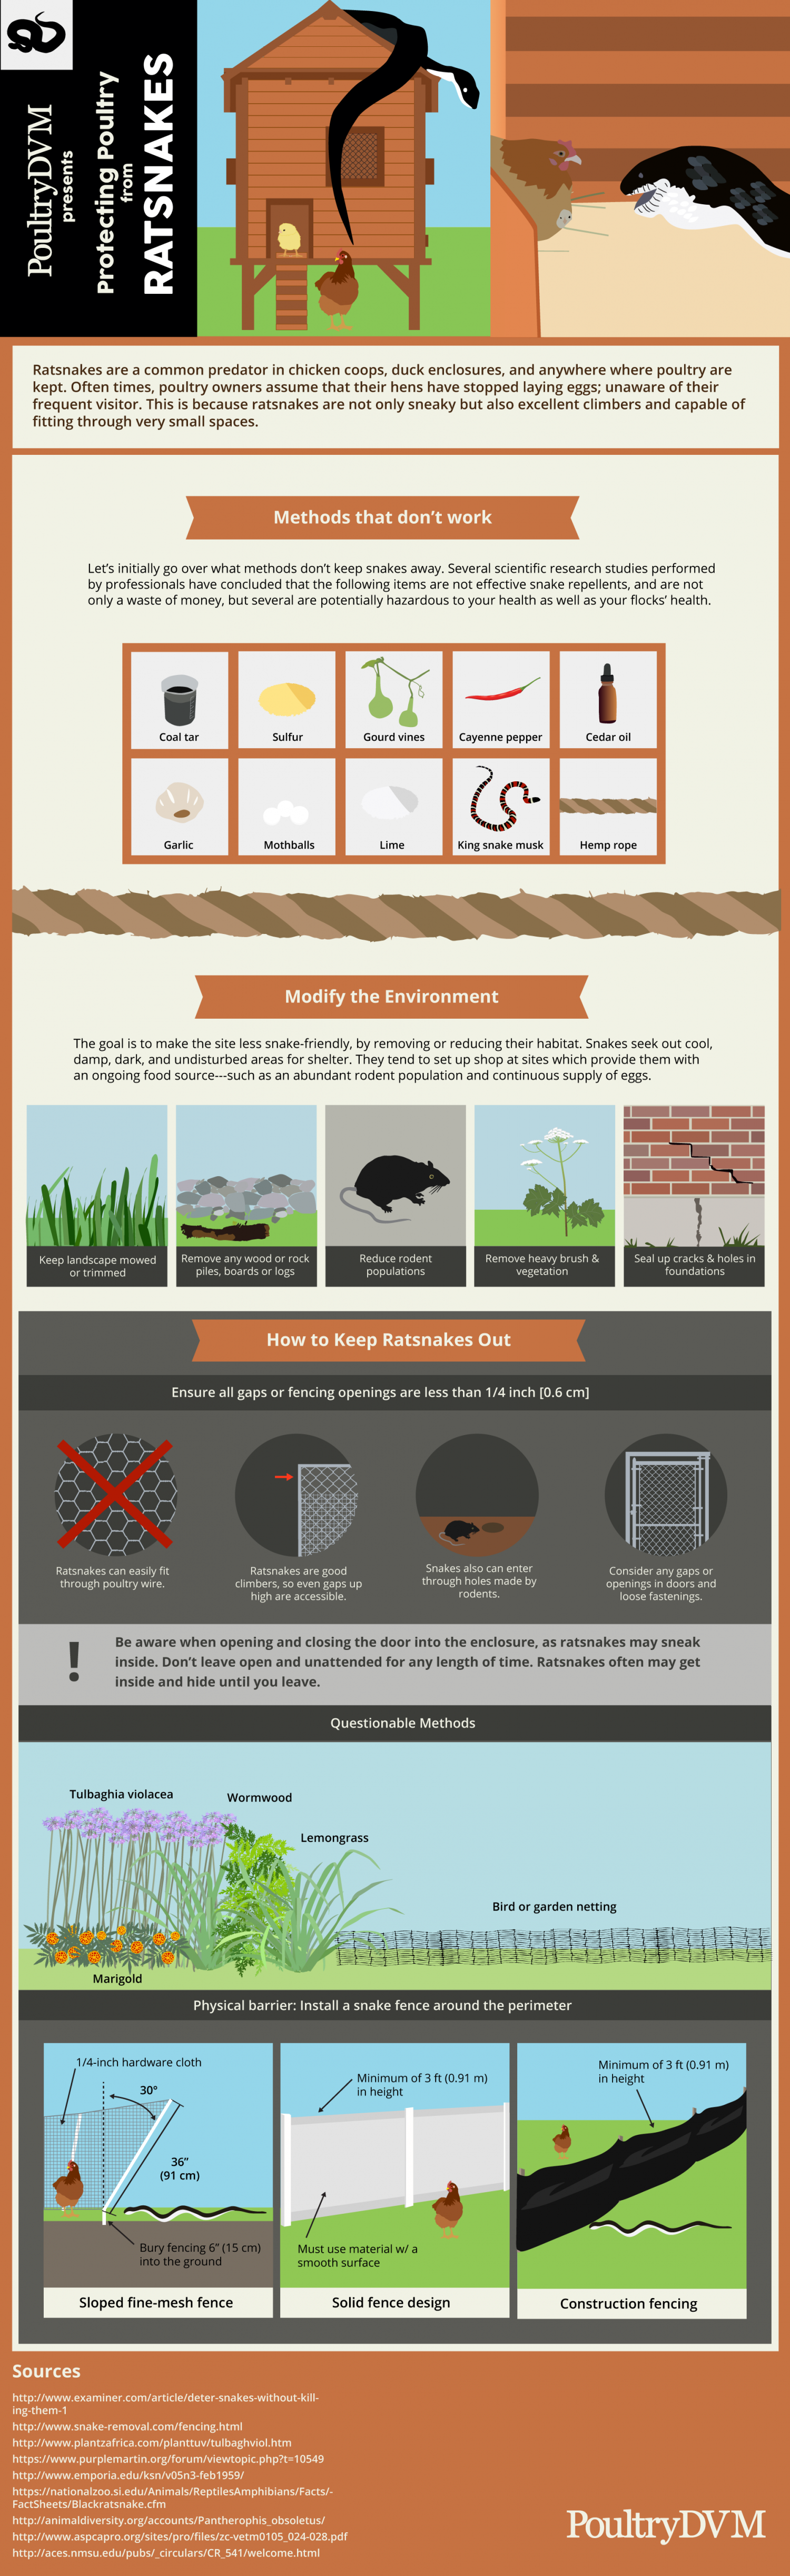 Protecting Poultry from Rat snakes Infographic